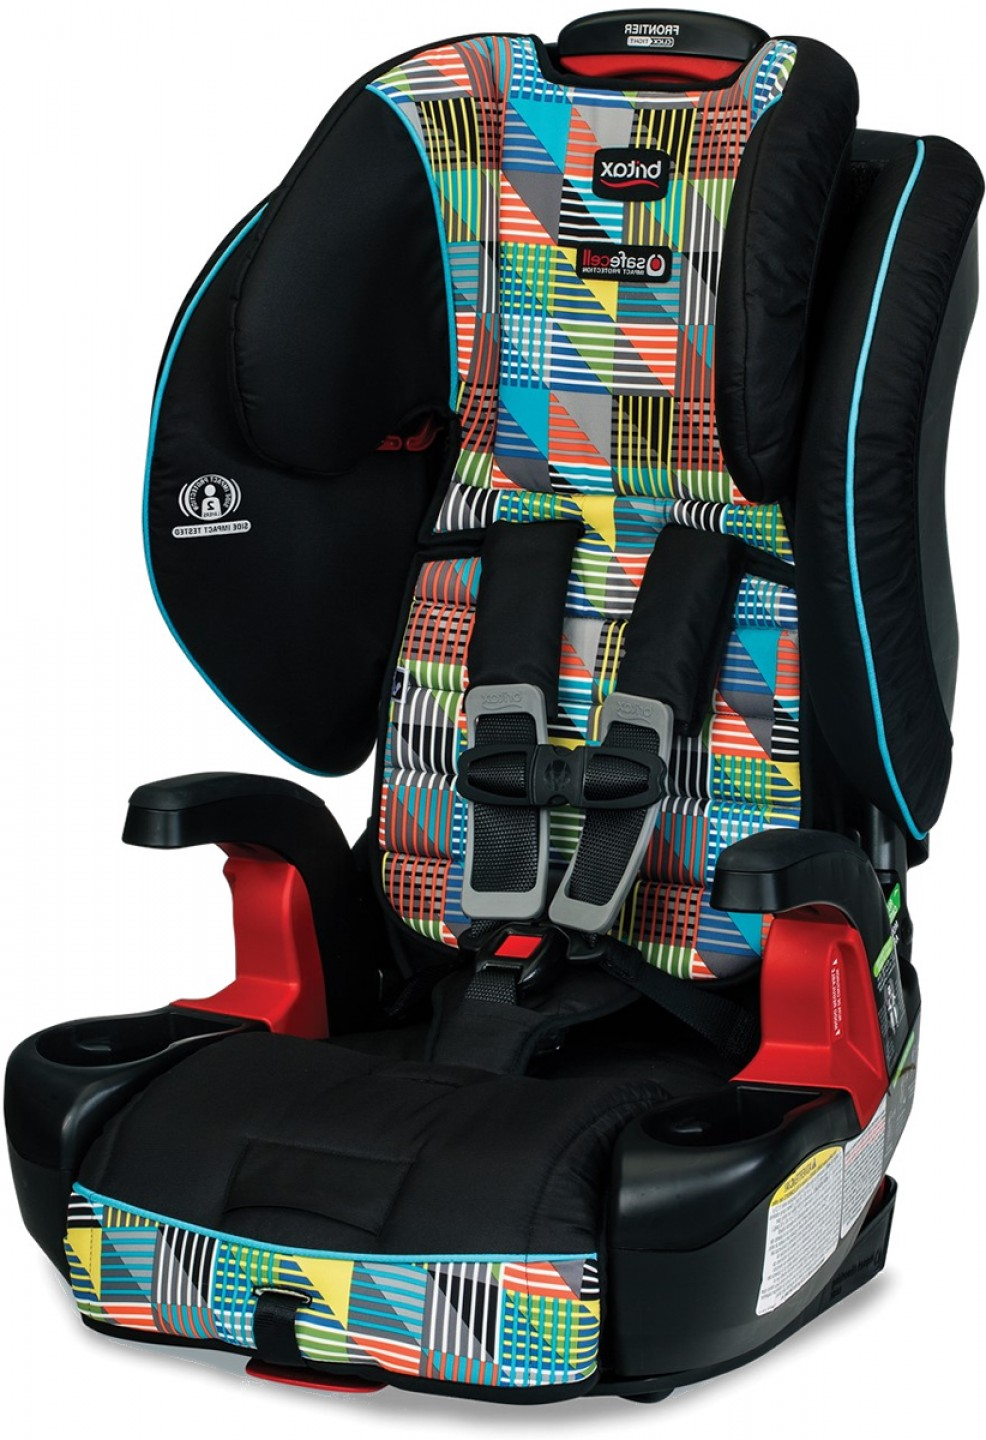 Air Conditioners Stabilizer Vector: Britax Frontier Clicktight Booster Car Seat Vector